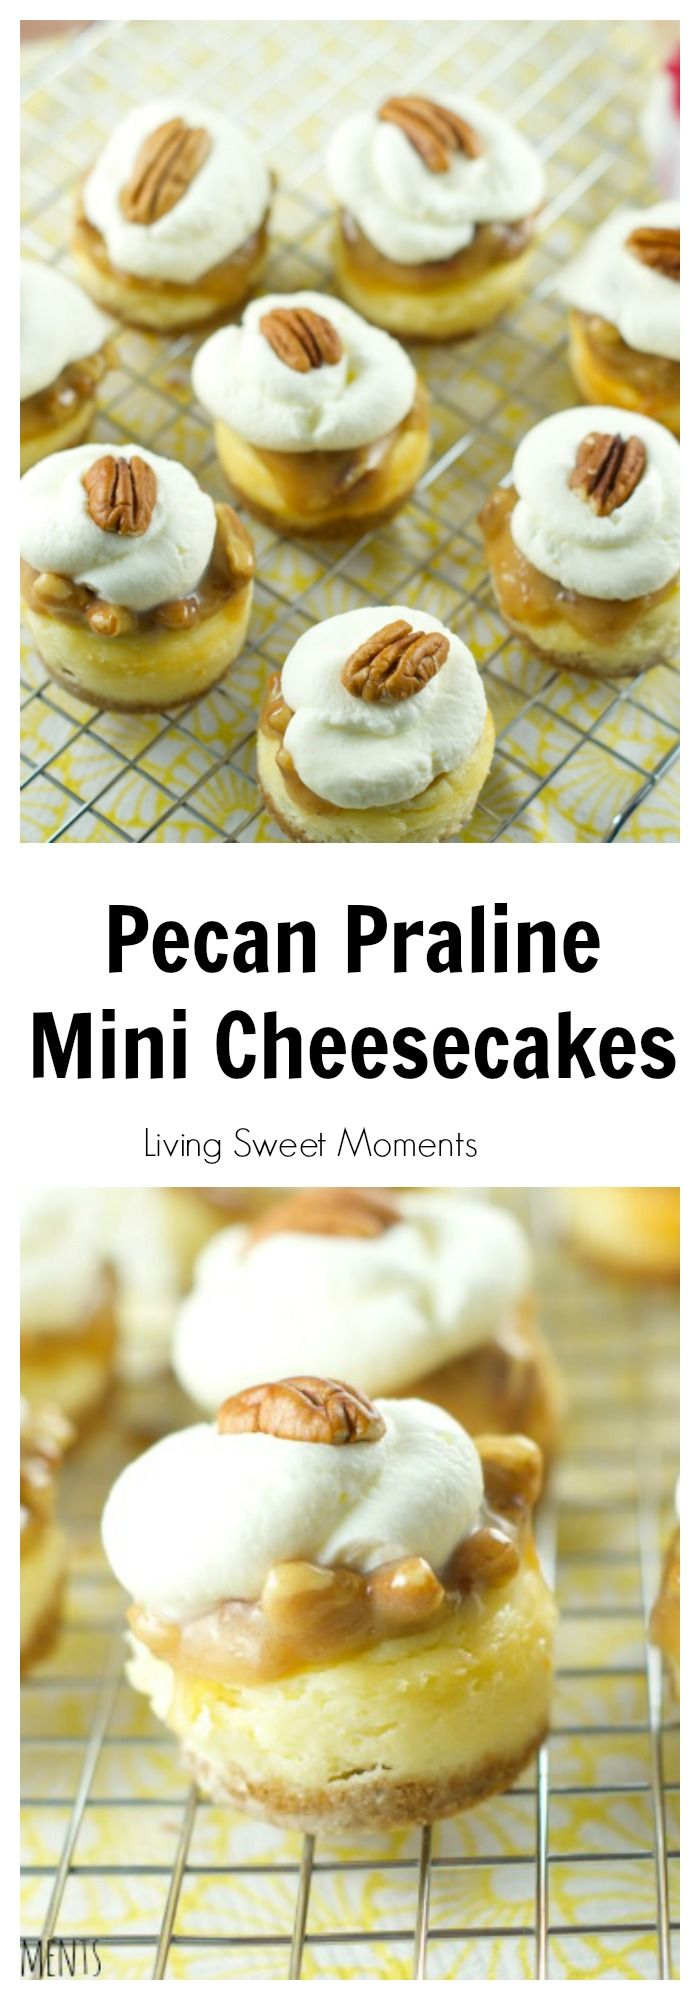 Pecan Praline Mini Cheesecakes - this is the best cheesecake recipe ever! Vanilla cheesecake bites are topped with pecan praline and chantilly cream. I want them everyday for dessert. More on livingsweetmoments.com